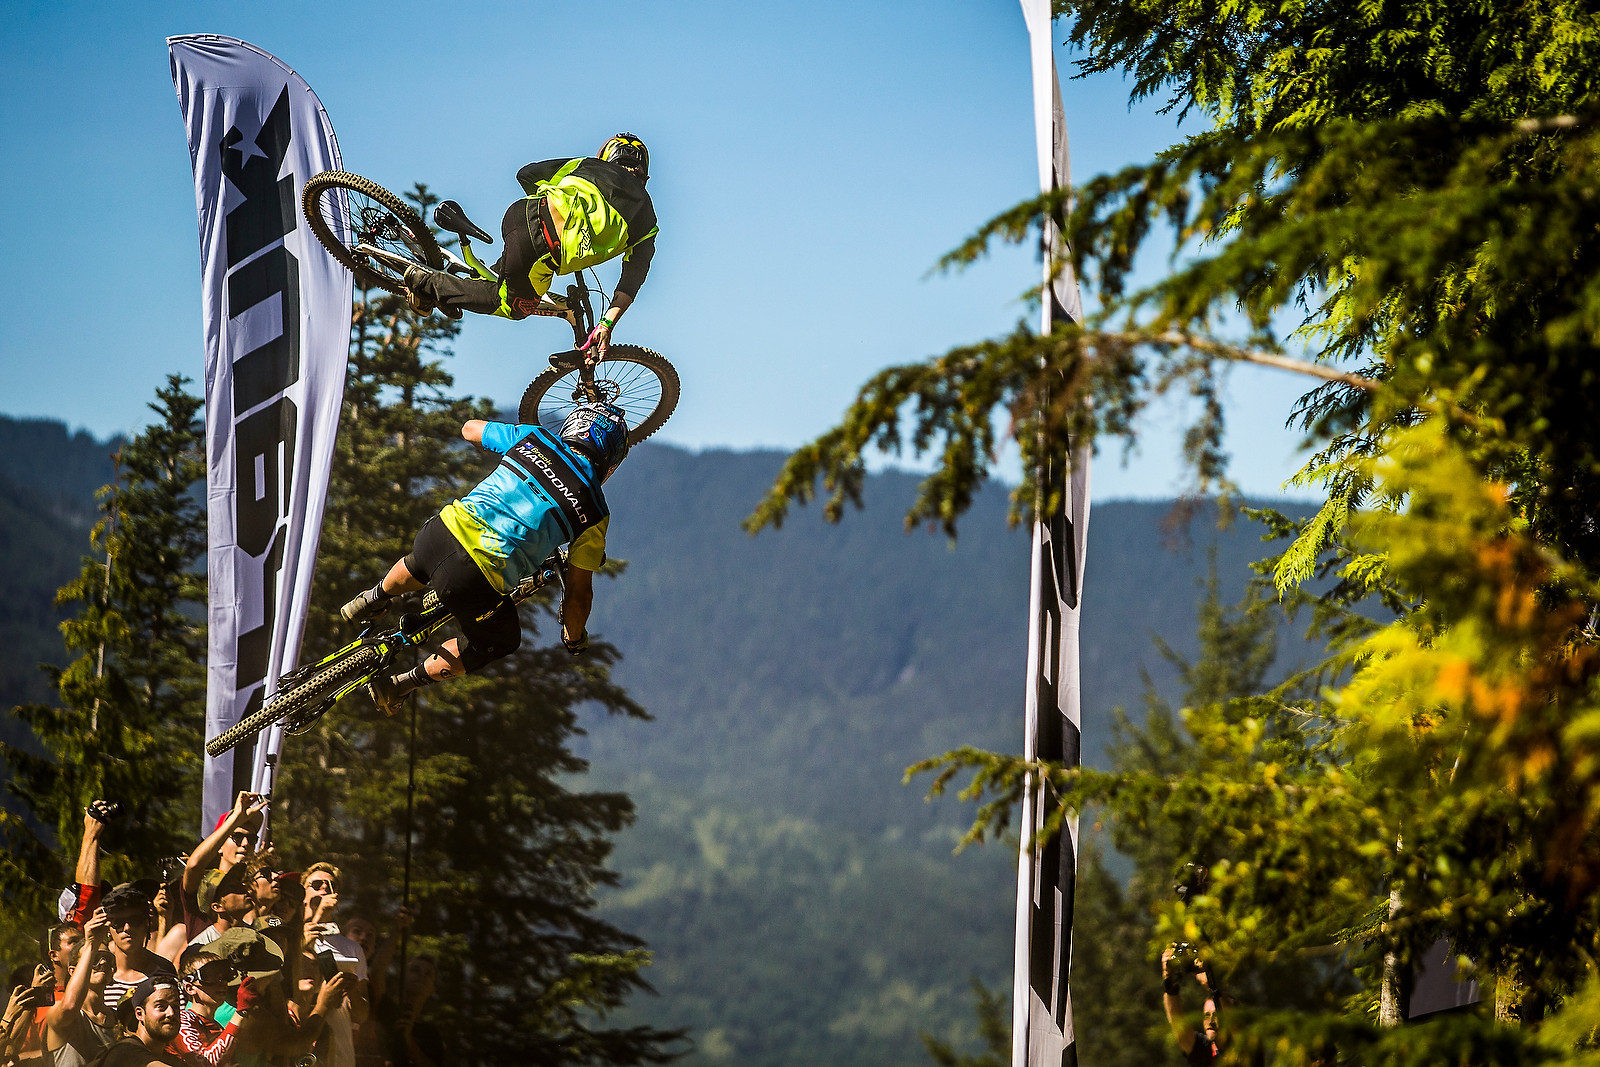 Allan Cooke and Brook MacDonald - Whip Off World Champs Photo Blast - Mountain Biking Pictures - Vital MTB